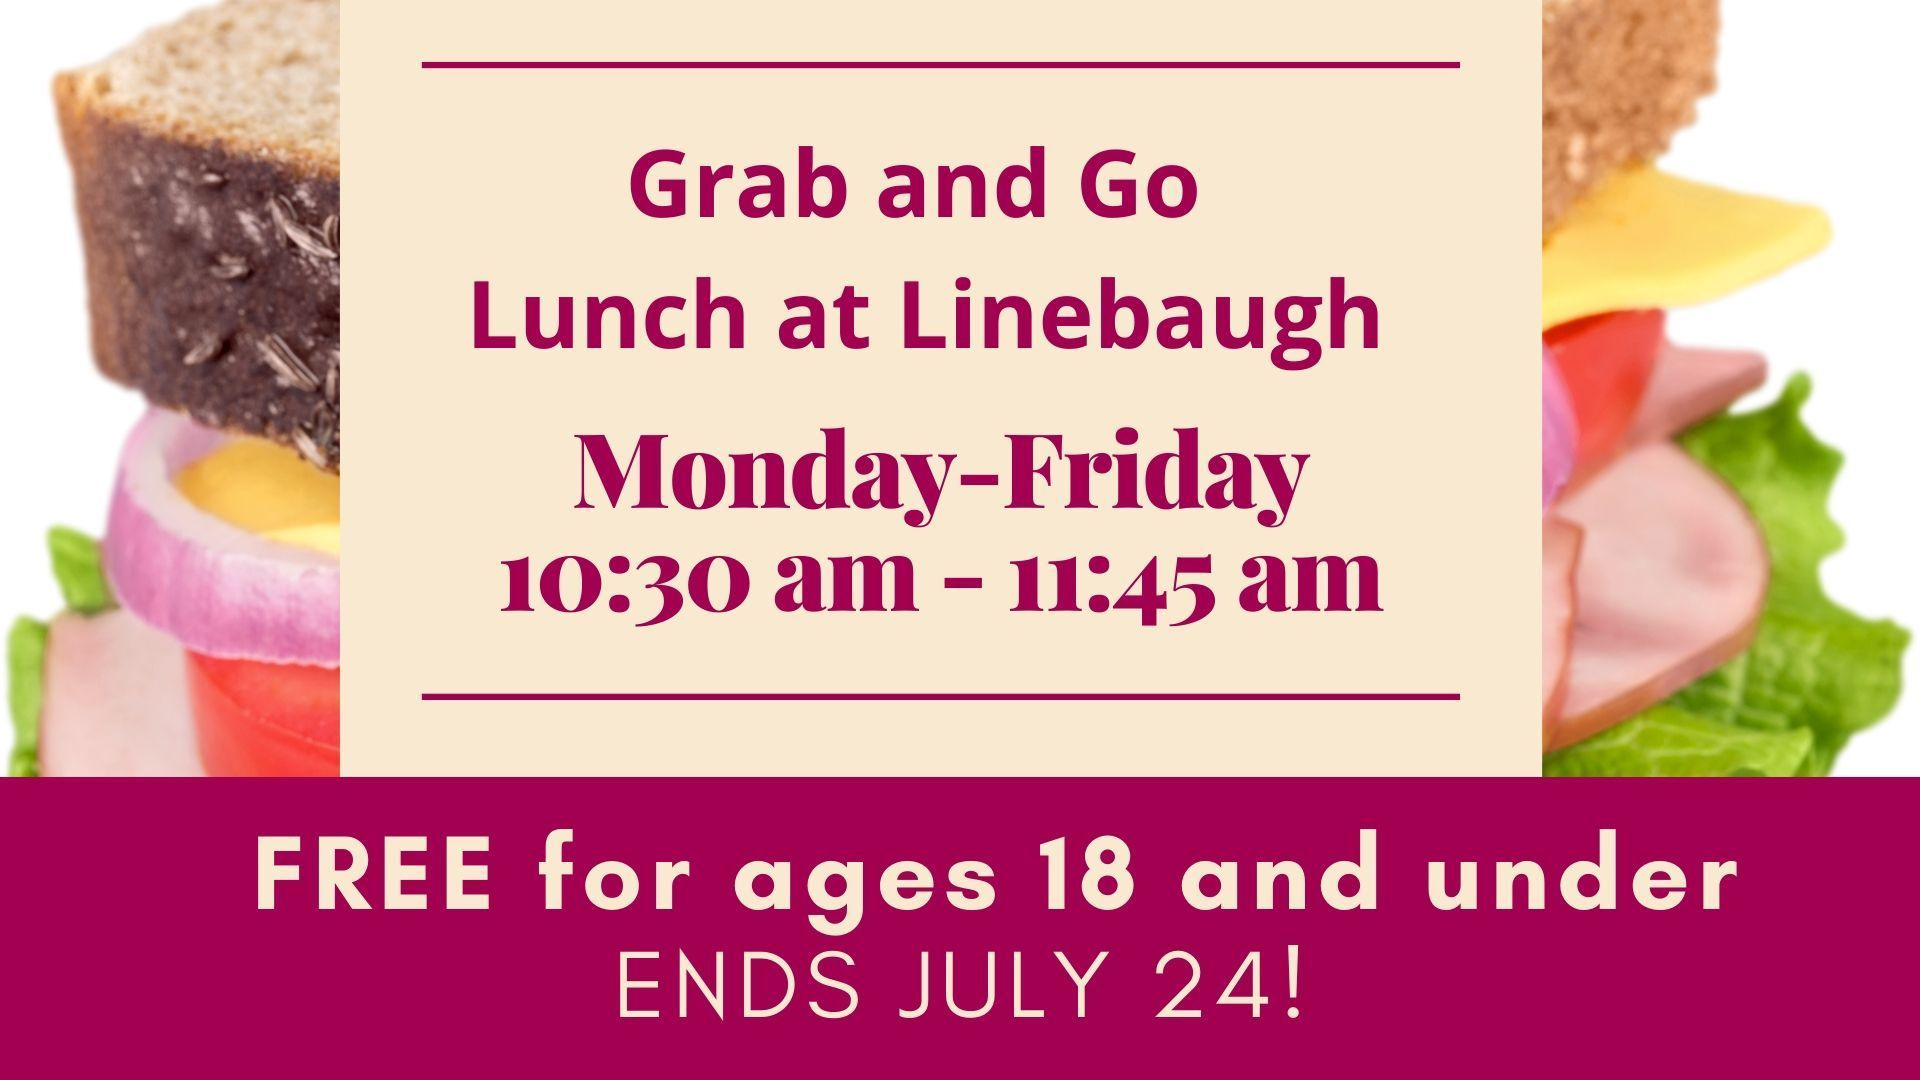 Grab-and-Go Lunch at Linebaugh